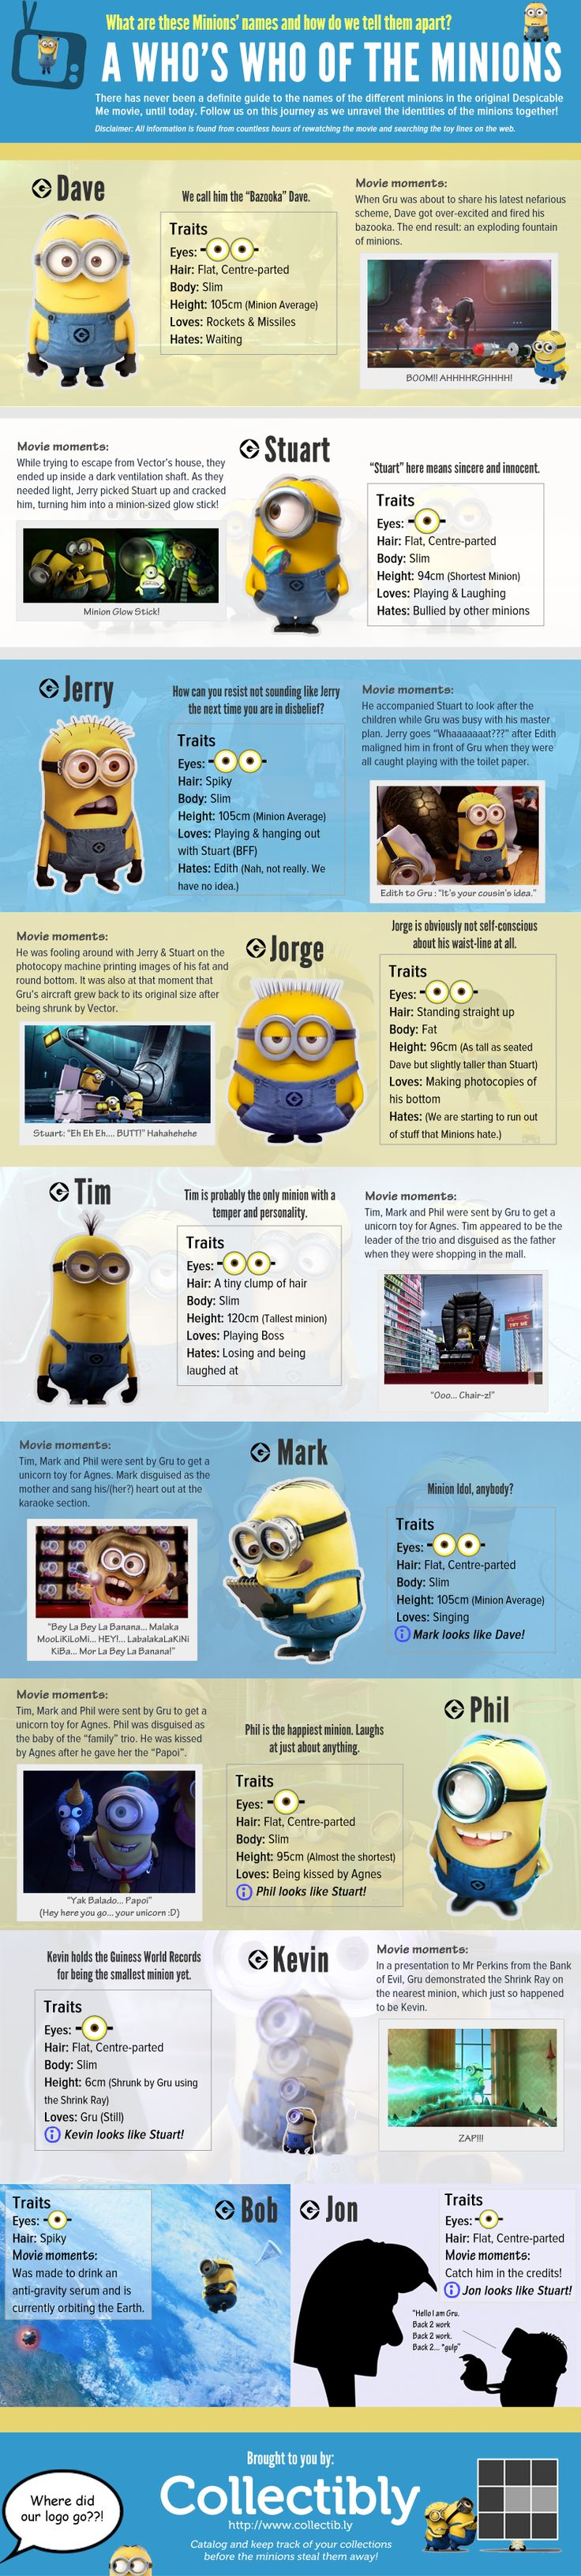 There has never been a definite guide to the names of the Minions in the original Despicable Me movie until today. Follow us on this journey as we unravel the identities of the minions together! Disclaimer: All information is found after countless hours of rewatching the movie and researching the available toy lines on the Internet.